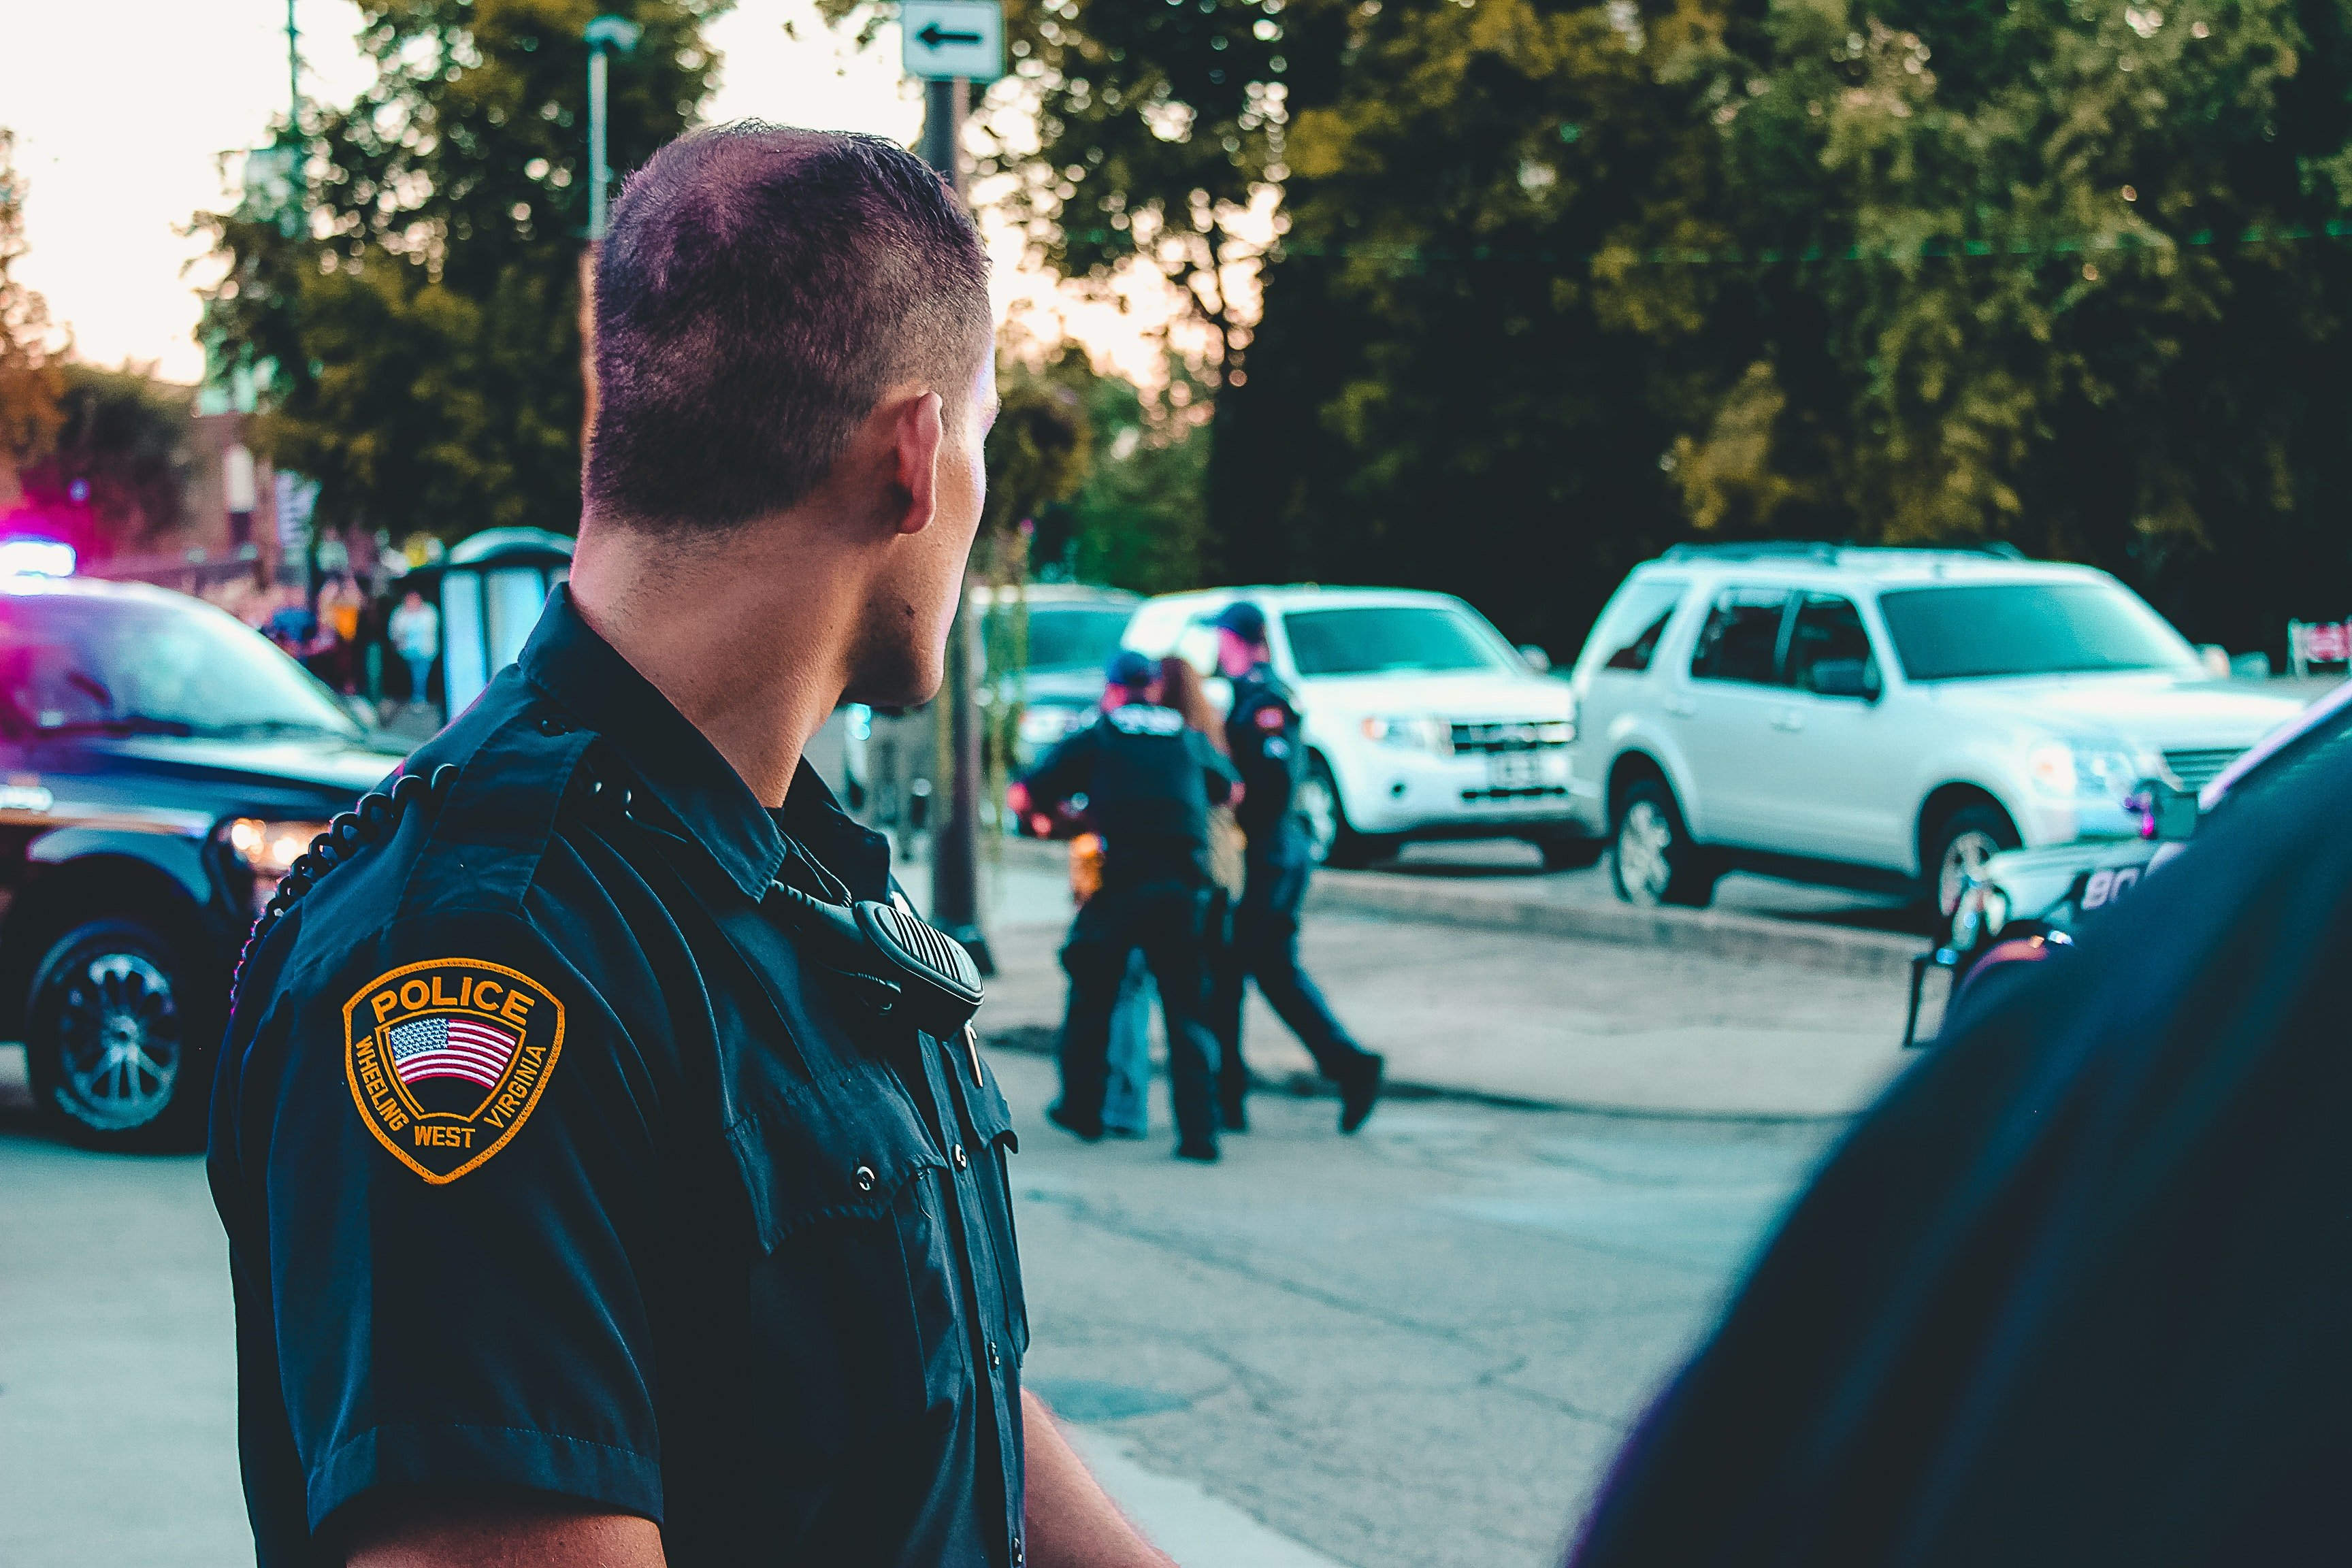 An officer looking back toward the scene behind him. | Source: Pexels/ Rosemary Ketchum